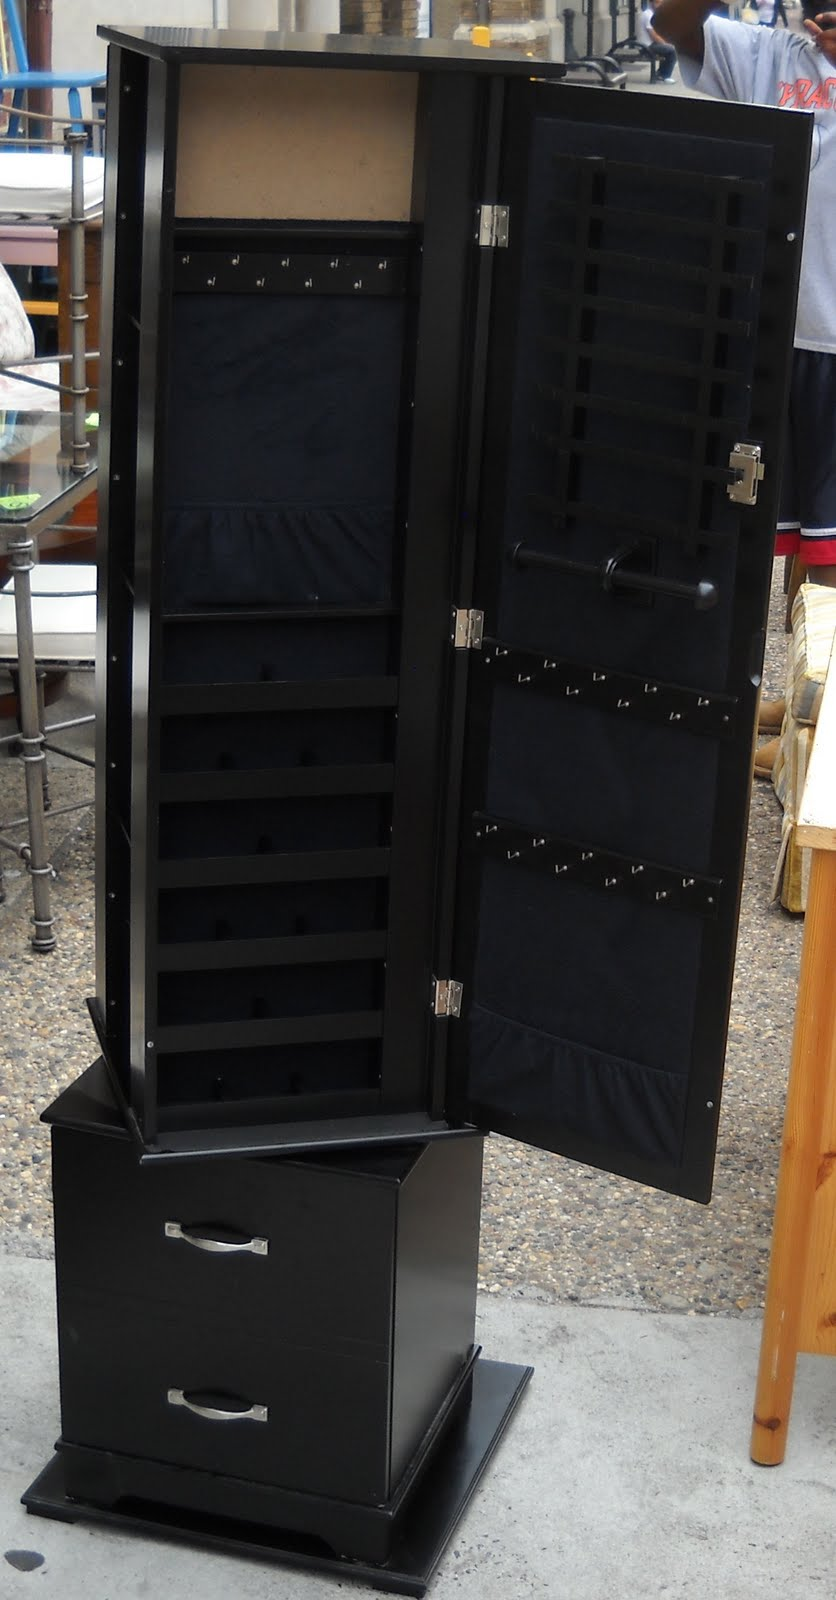 Uhuru Furniture & Collectibles: Black Jewelry Armoire SOLD